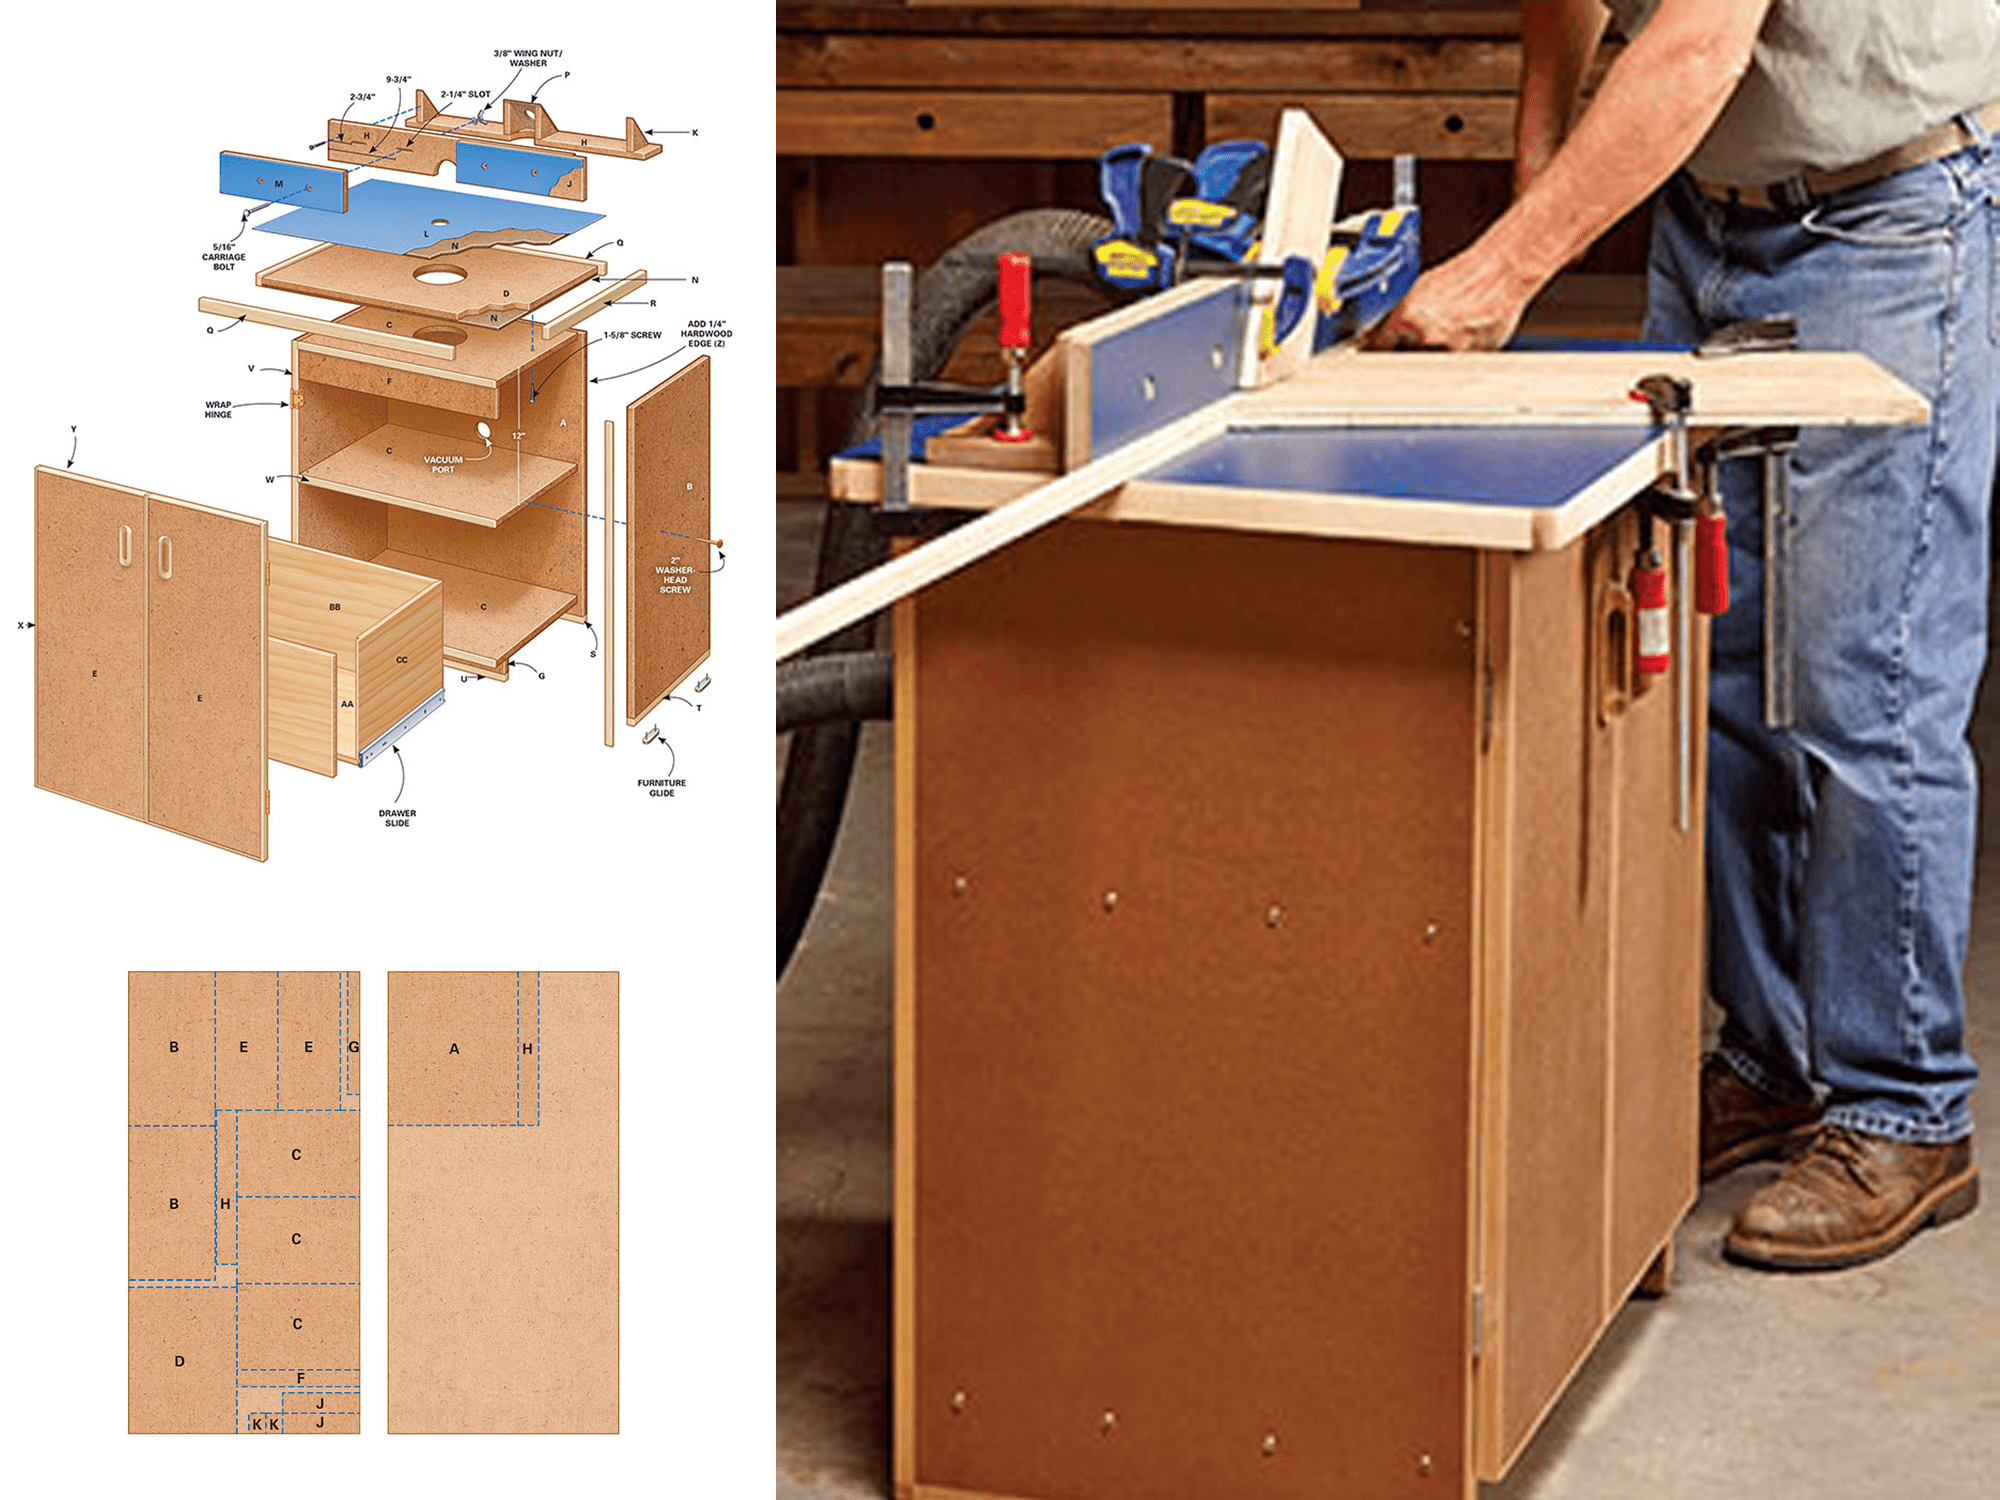 9 free diy router table plans you can use right now keyboard keysfo Gallery